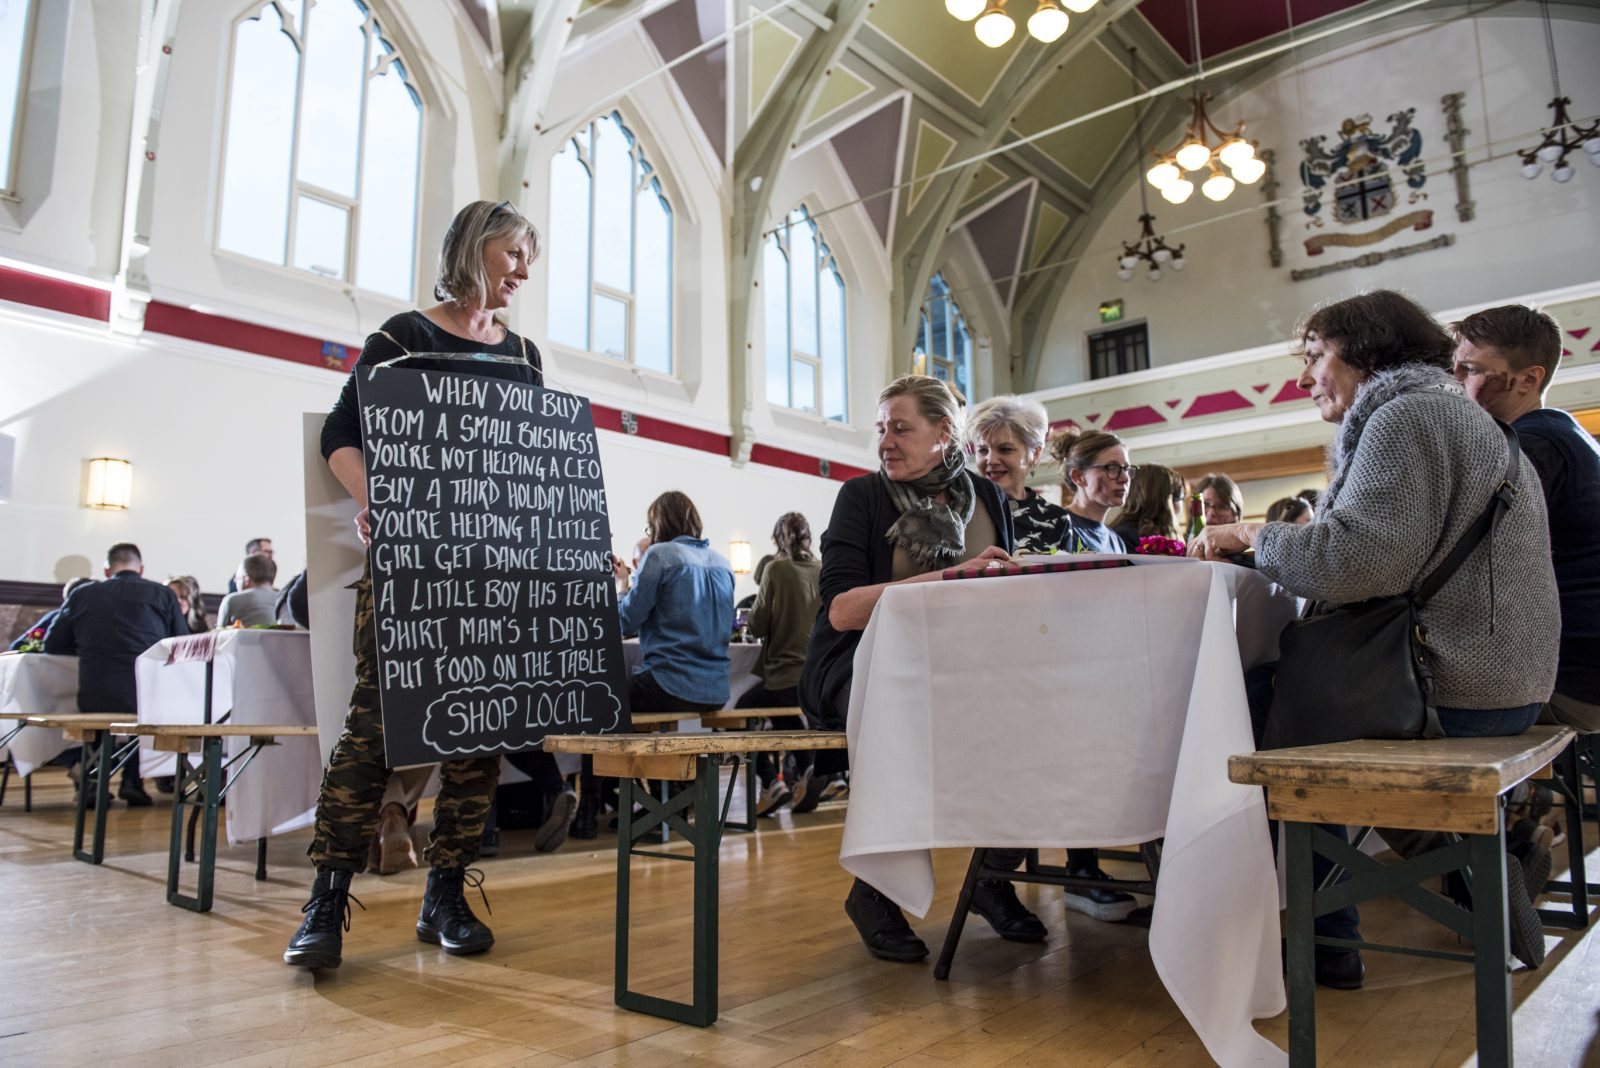 A person in camouflage trousers and black boots is wearing a blackboard sandwich board and standing at the end of a table. The blackboard reads 'When you buy from a small business you're not helping a CEO buy a third holiday home you're helping a little girl get dance lessons, a little boy his team shirt, Mam's and Dad's put food on the table. Shop Local.' There are people sat at the table reading the blackboard.